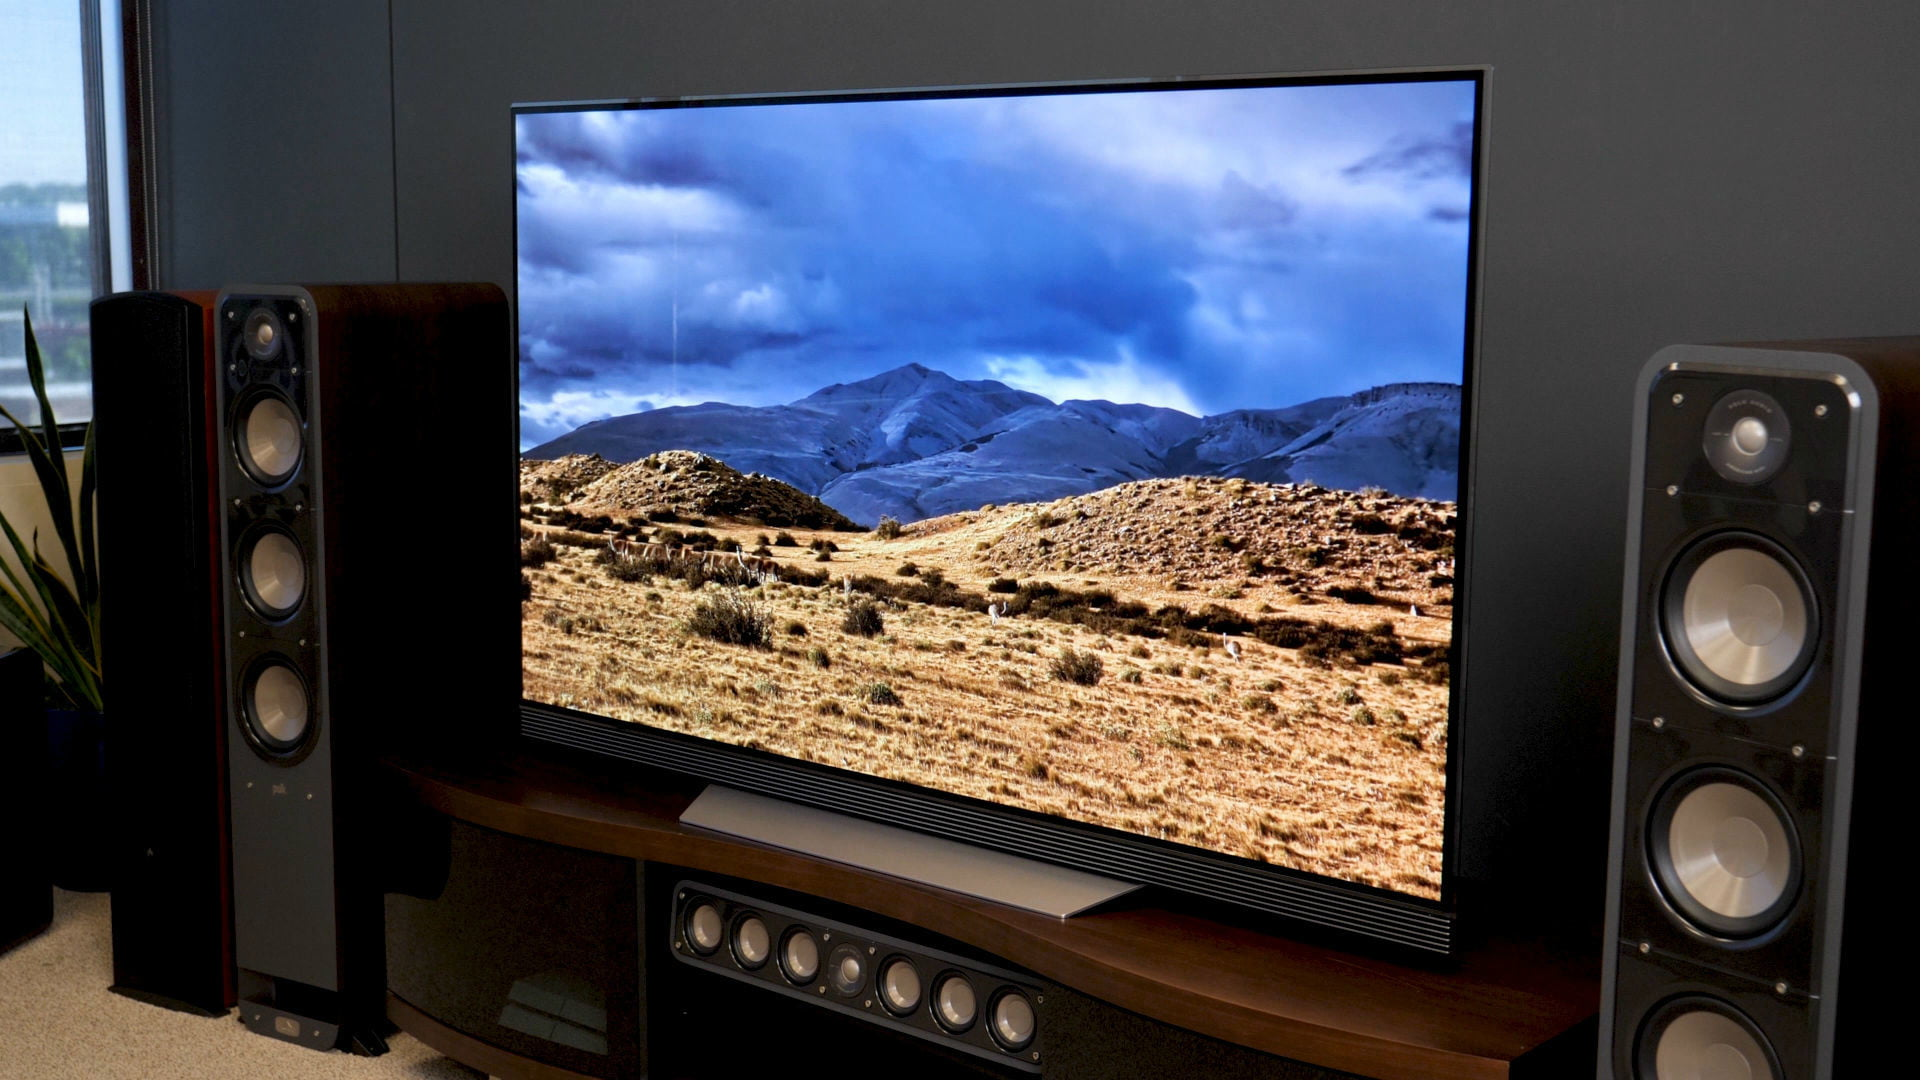 lg e7 oled tv unboxing and setup get this 4k tv performing for you new york city blog. Black Bedroom Furniture Sets. Home Design Ideas